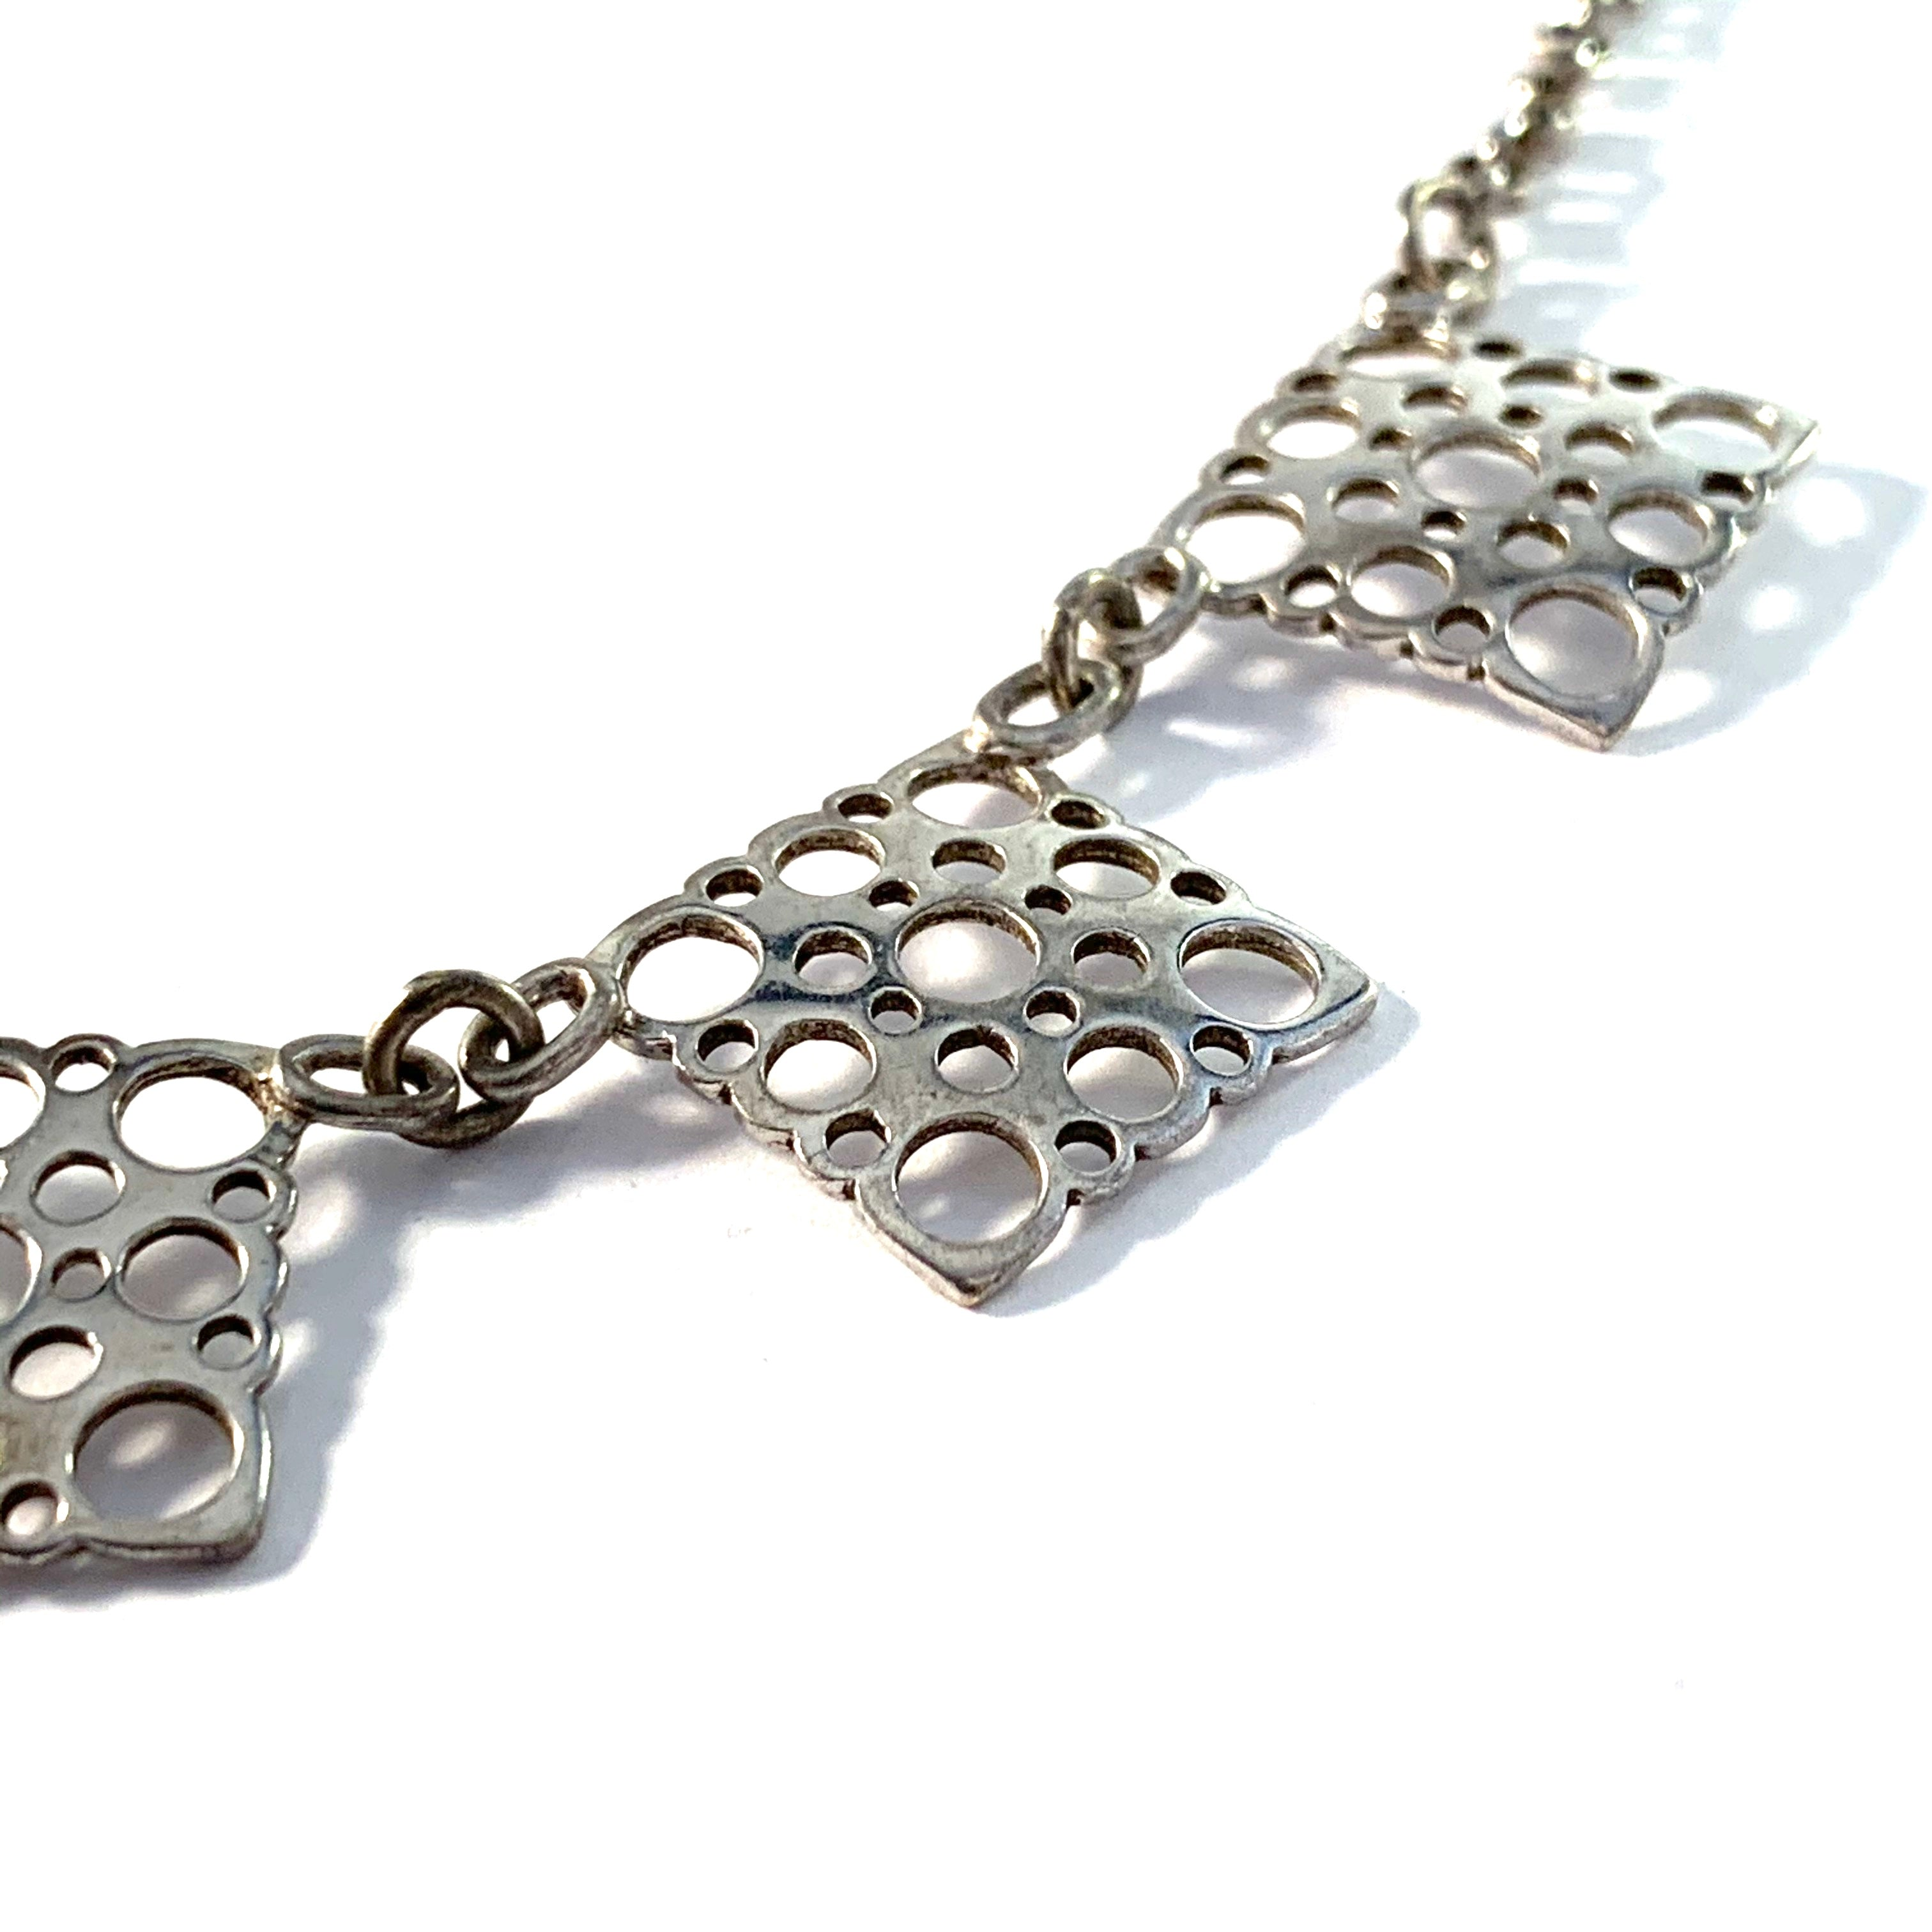 Liisa Vitali for Kultakeskus, Finland Vintage Sterling Silver Necklace.